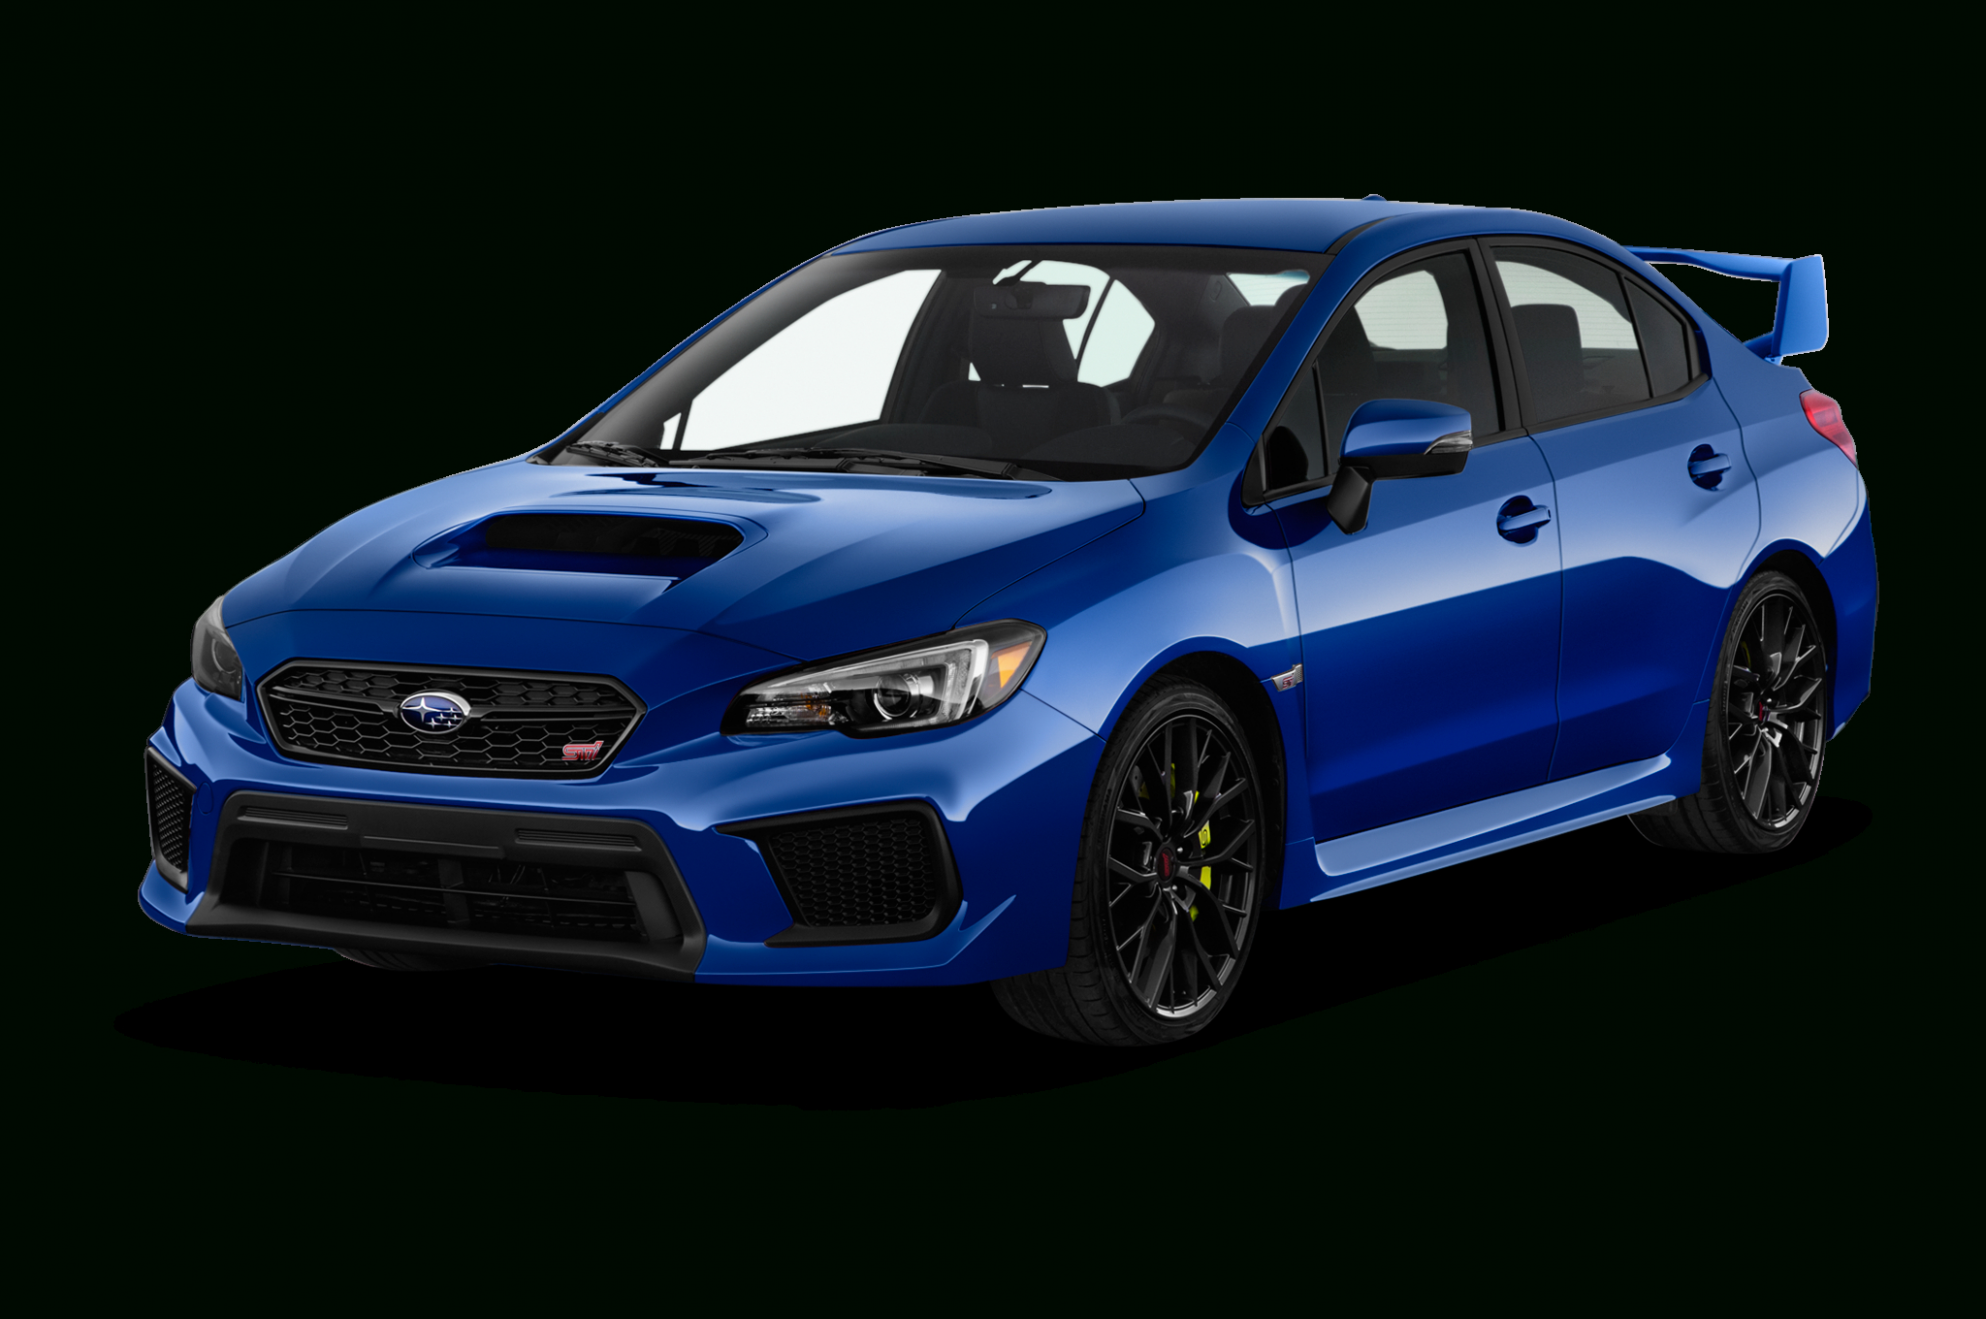 11 subaru wrx 11-611 Release Date, Price and Review 6511*11 - 11 ..